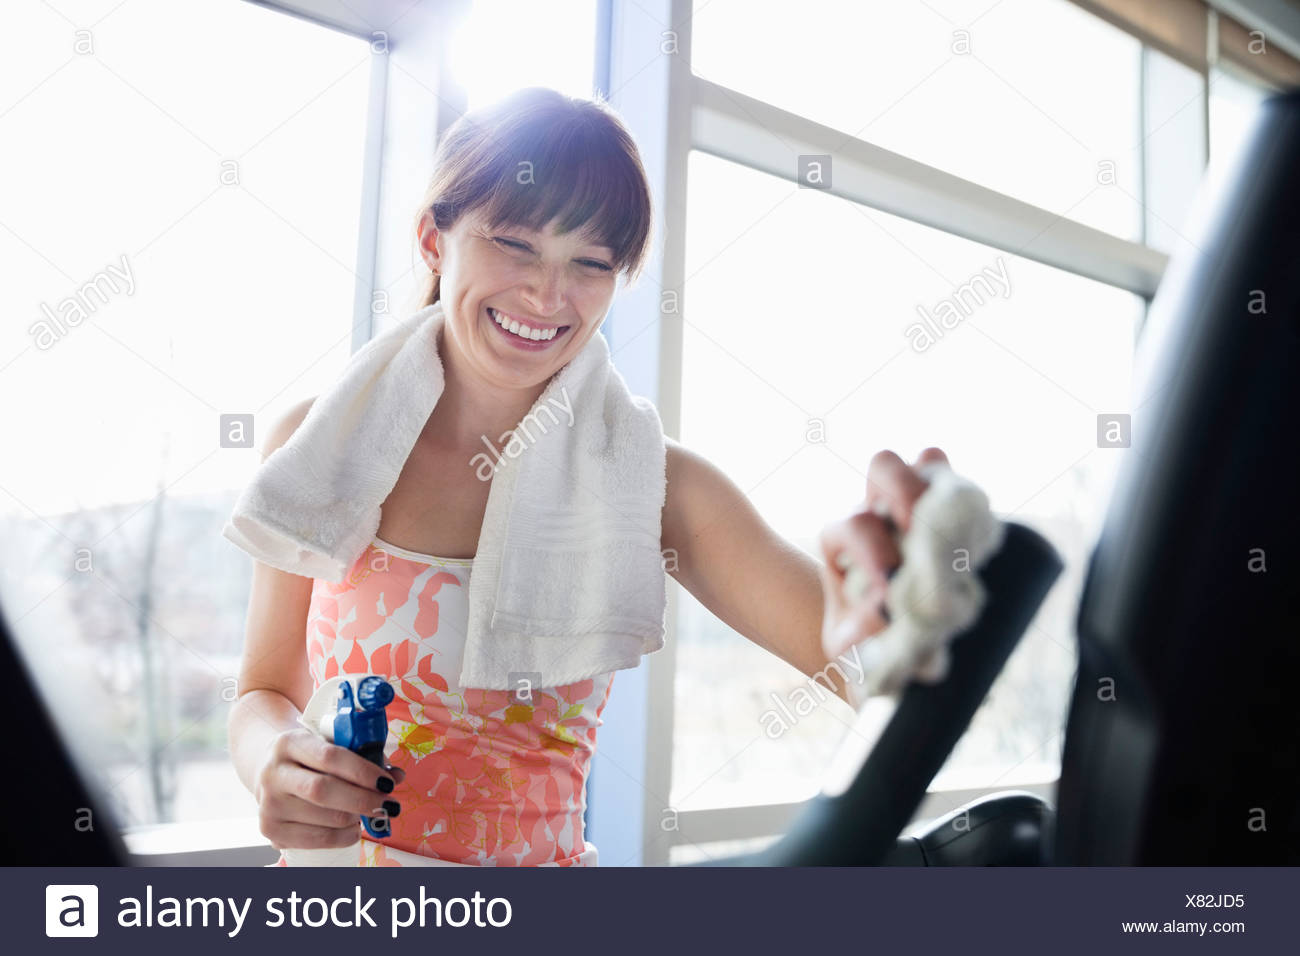 Woman cleaning stationary bike in fitness center - Stock Image